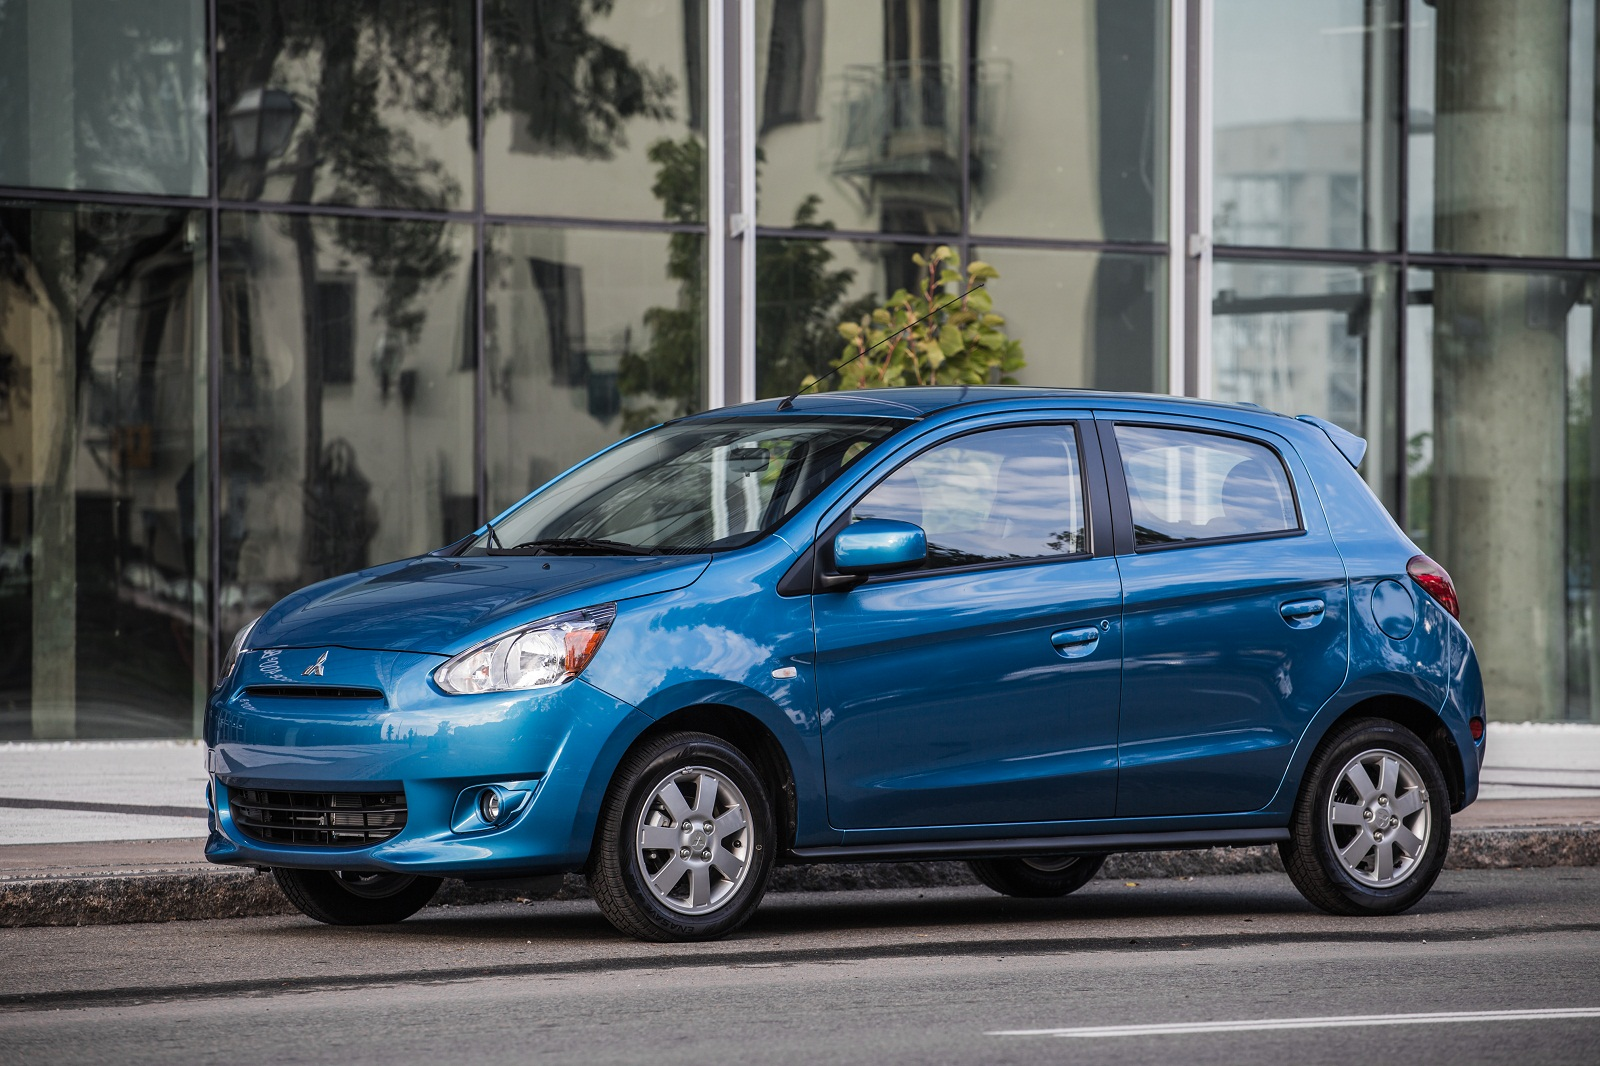 2014 Mitsubishi Mirage Review, Ratings, Specs, Prices, and